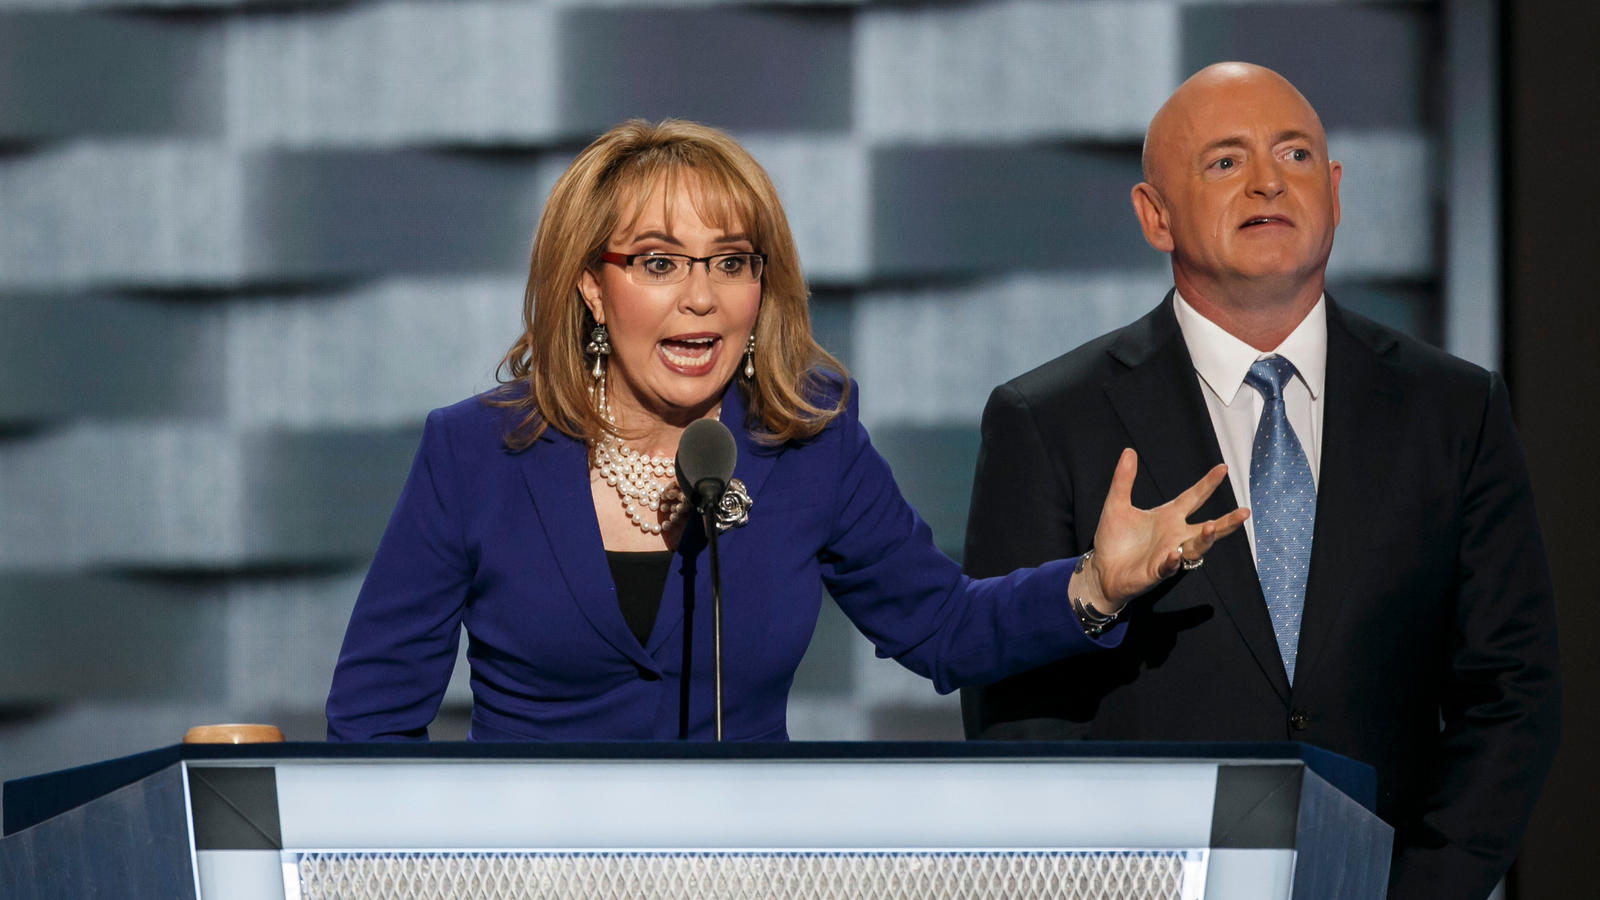 Former U.S. Rep. Gabrielle Giffords of Arizona speaks at the Democratic National Convention alongside her husband, Mark E. Kelly, in July. (Marcus Yam / Los Angeles Times)